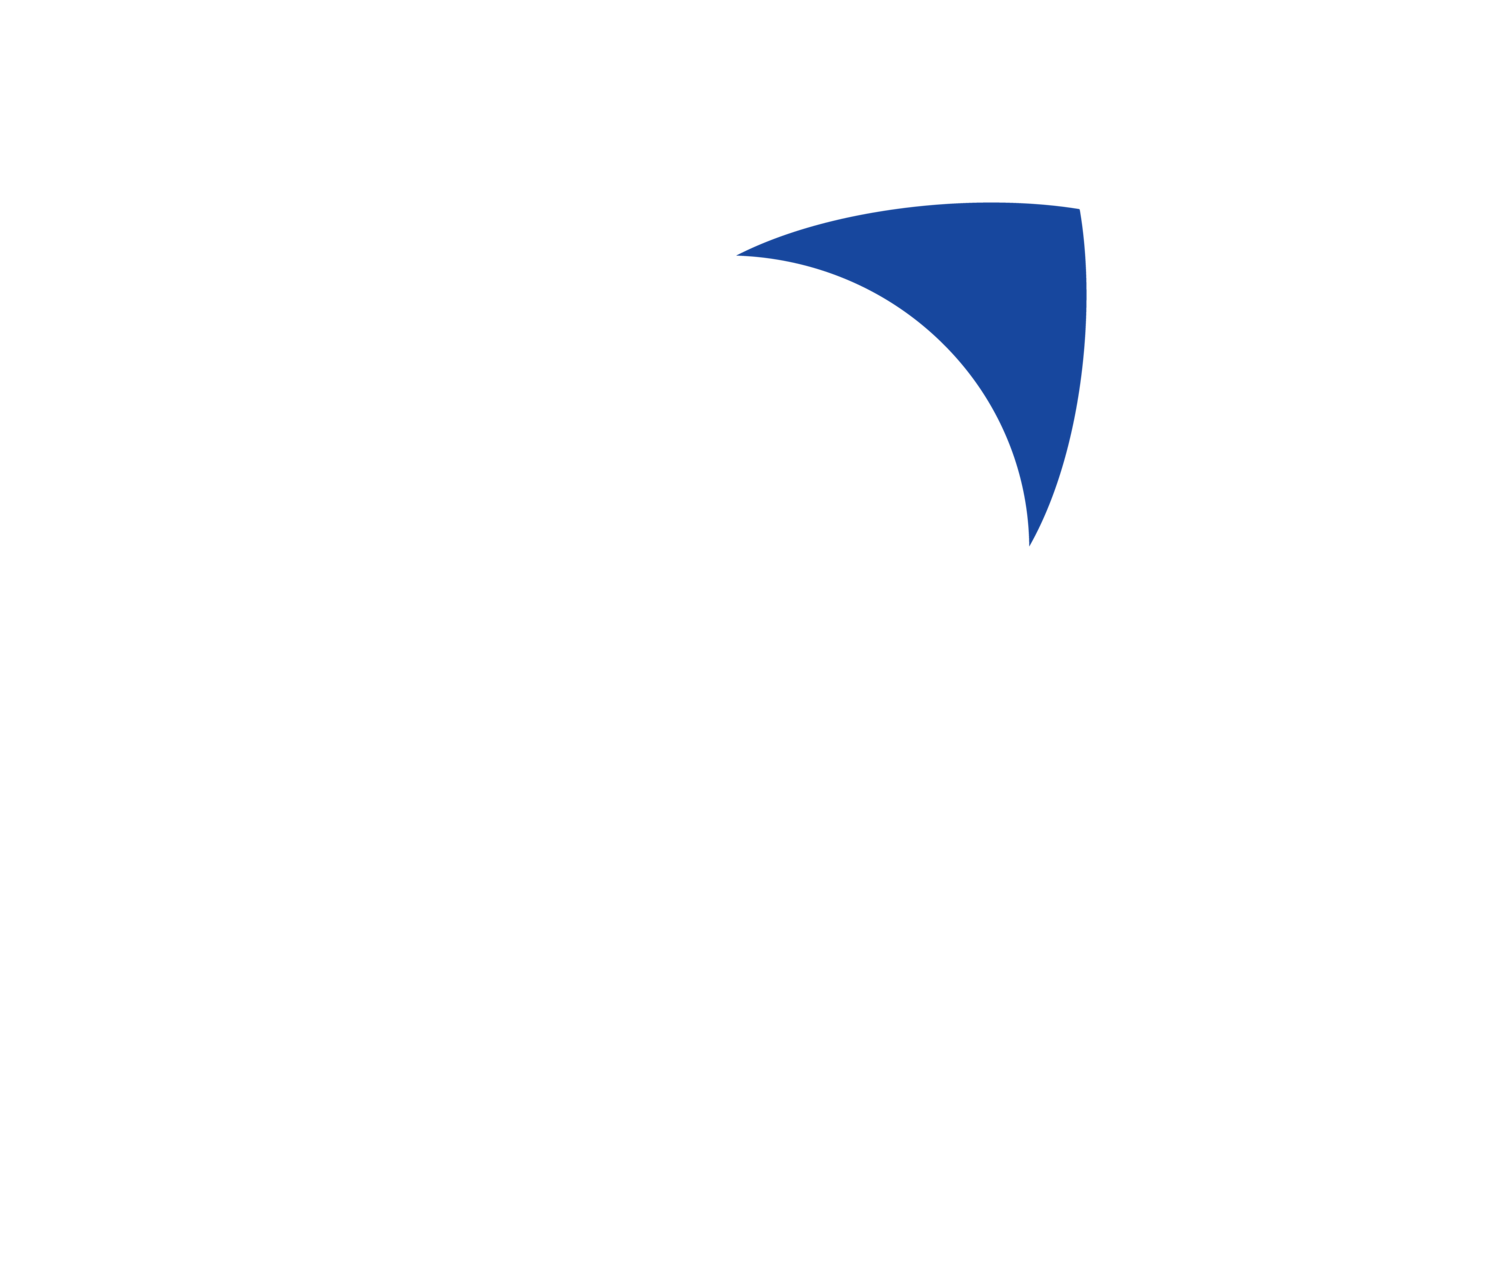 Hilo Motion Pictures